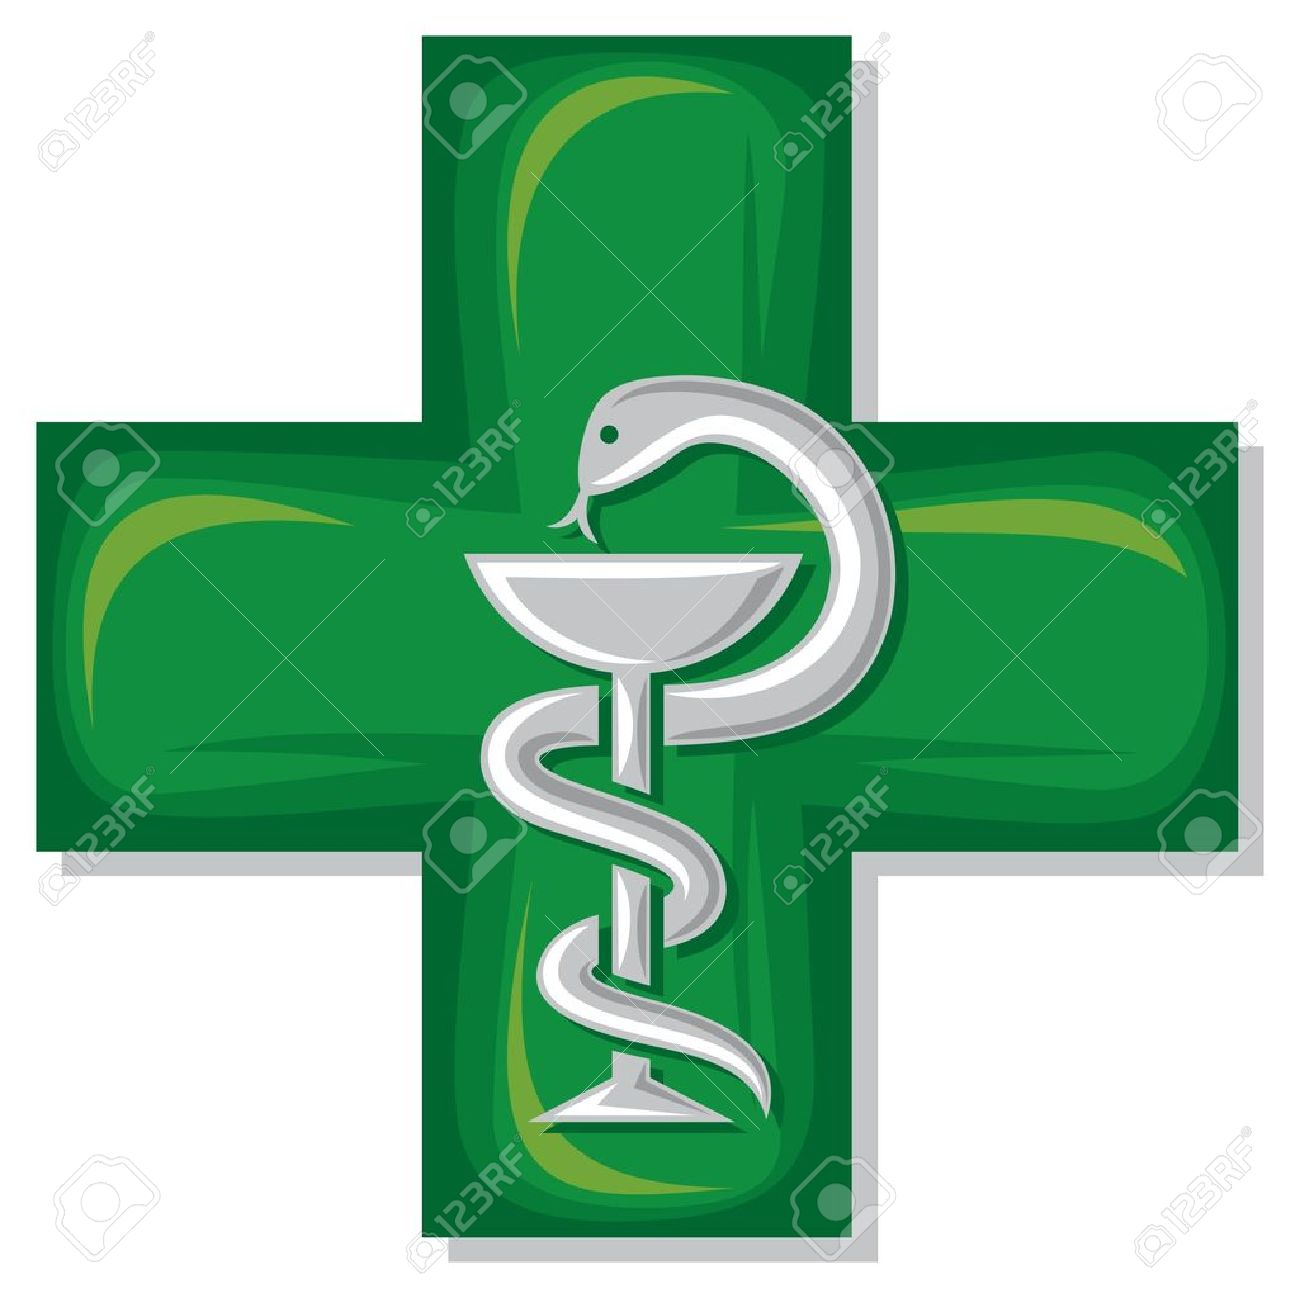 Medical Cross Symbol Emblem For Drugstore Or Medicine Green Medical